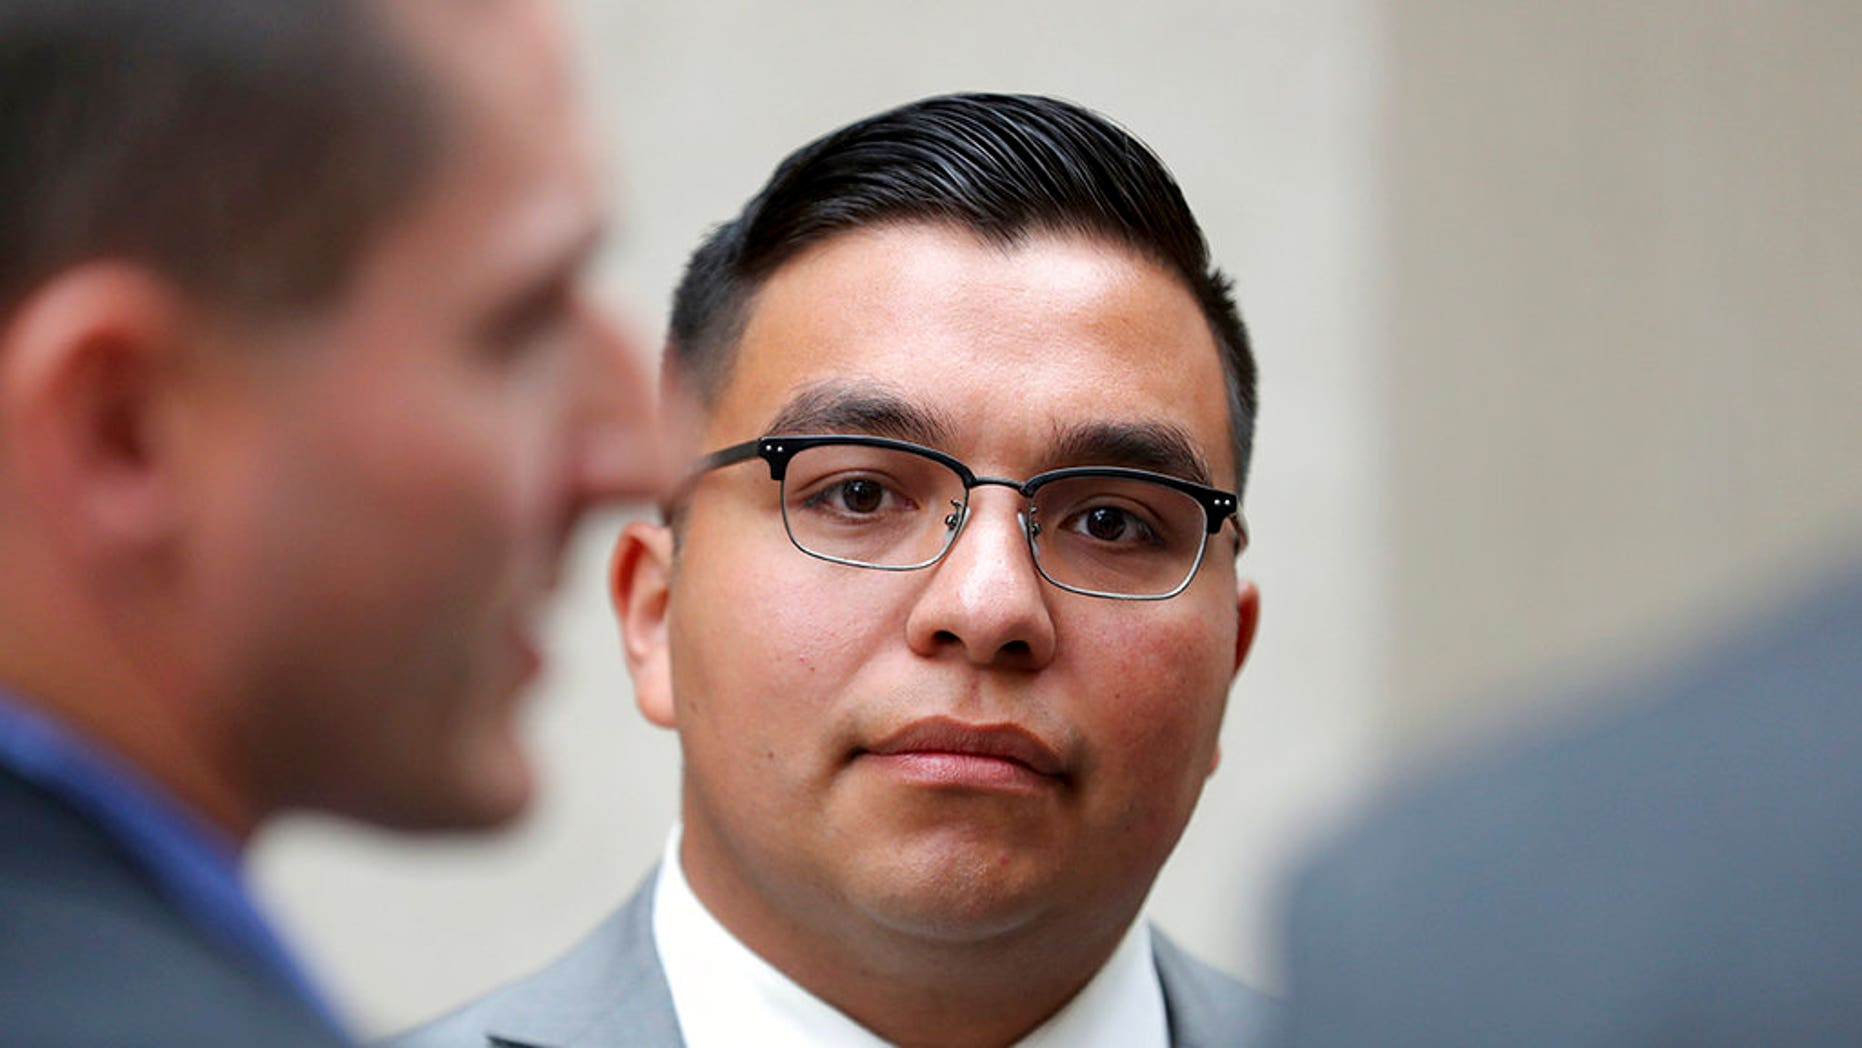 Minnesota police officer Jeronimo Yanez was acquitted of manslaughter in the shooting death of motorist Philando Castile on Friday.